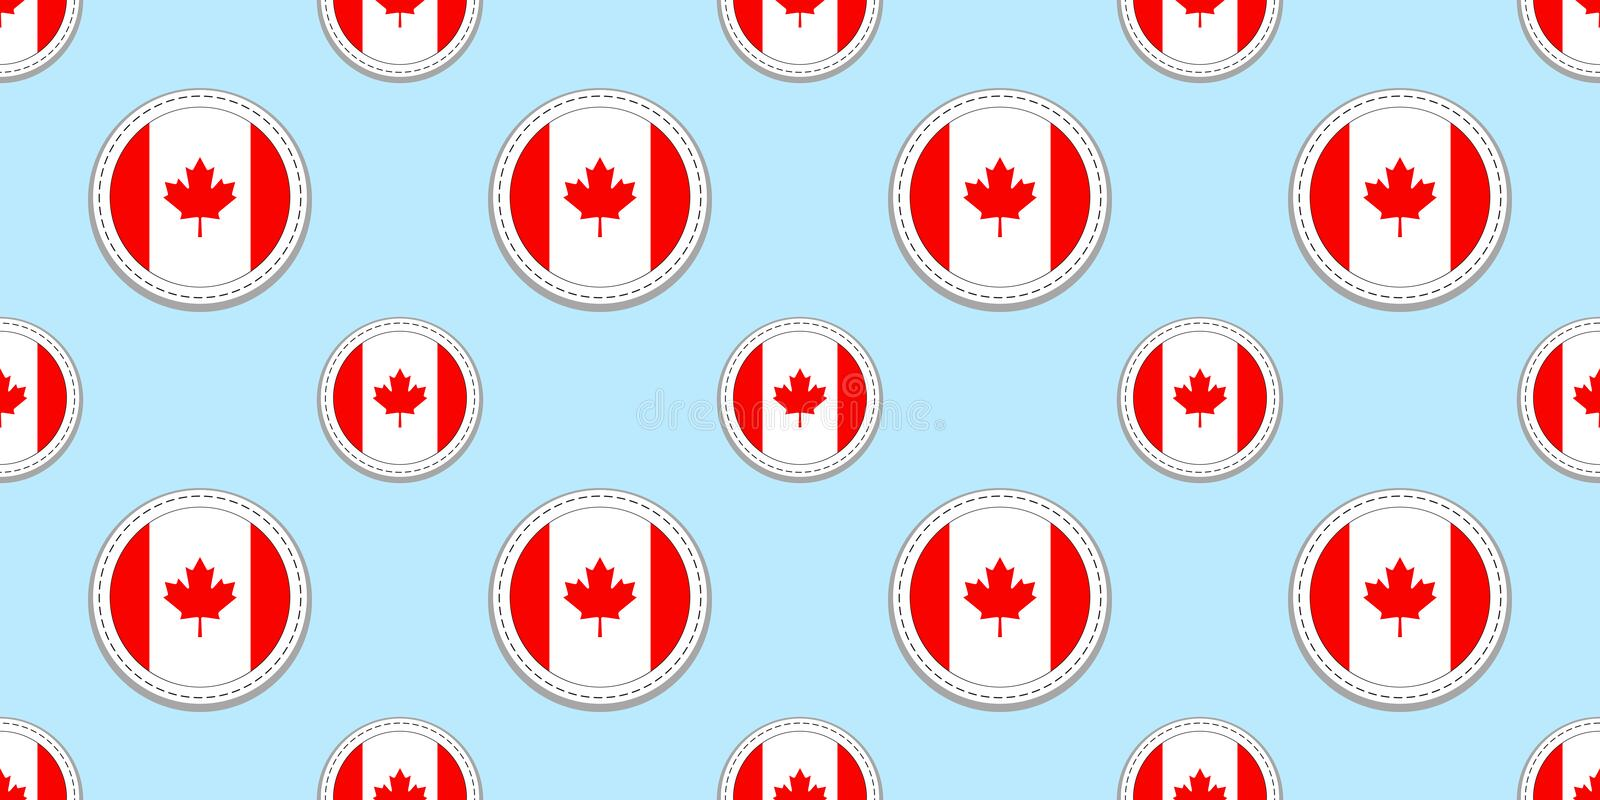 Canada round flag seamless pattern. Canadian background. Vector circle icons. Geometric symbols. Texture for sports. Pages, competition, games. travelling vector illustration